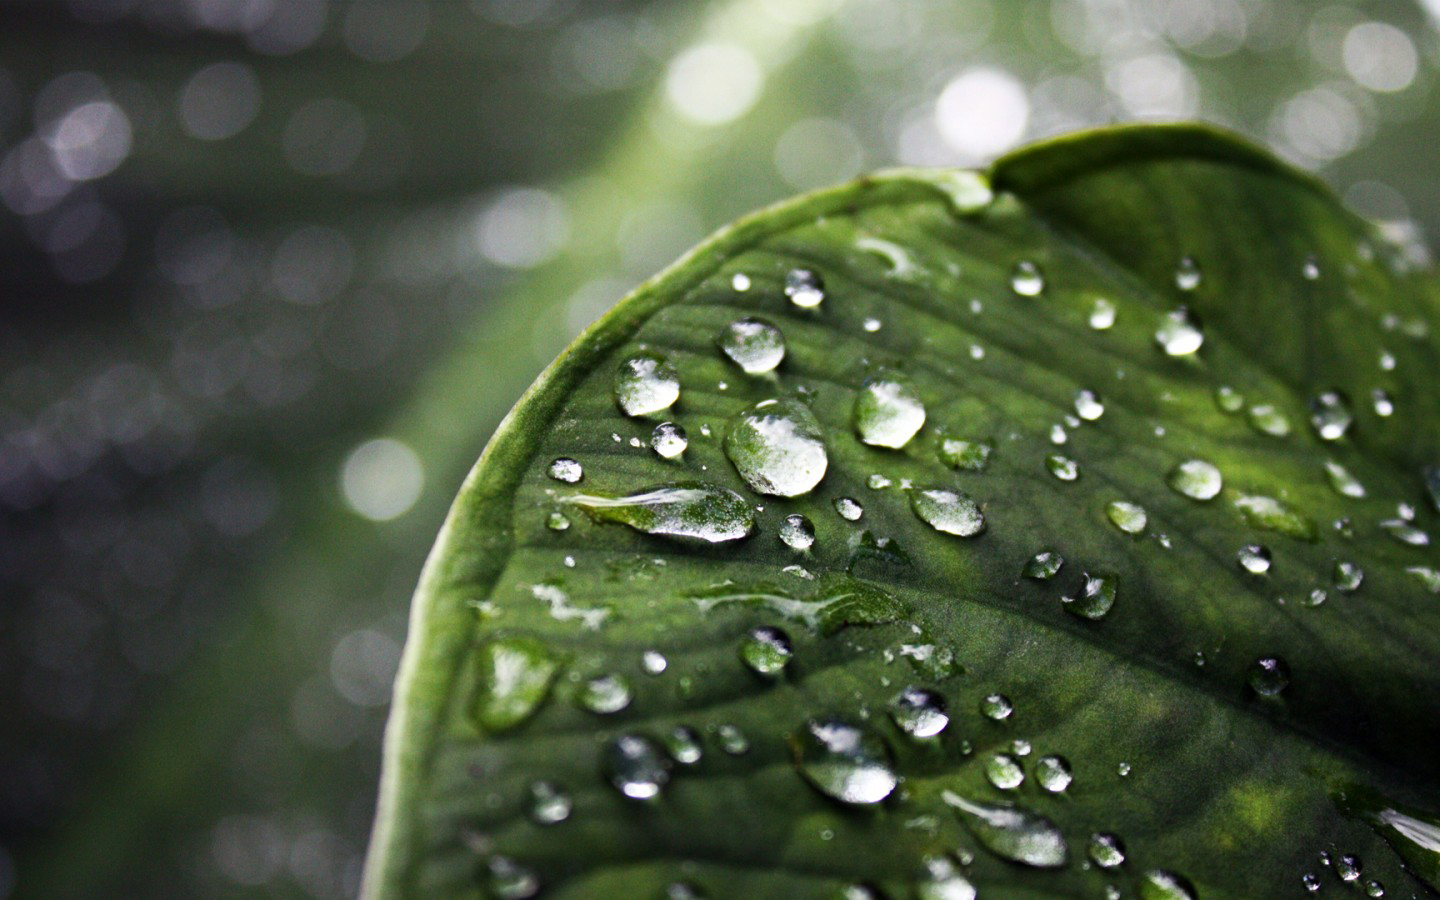 wallpaper desktop nature rain 3d   Wallpapers 1440x900